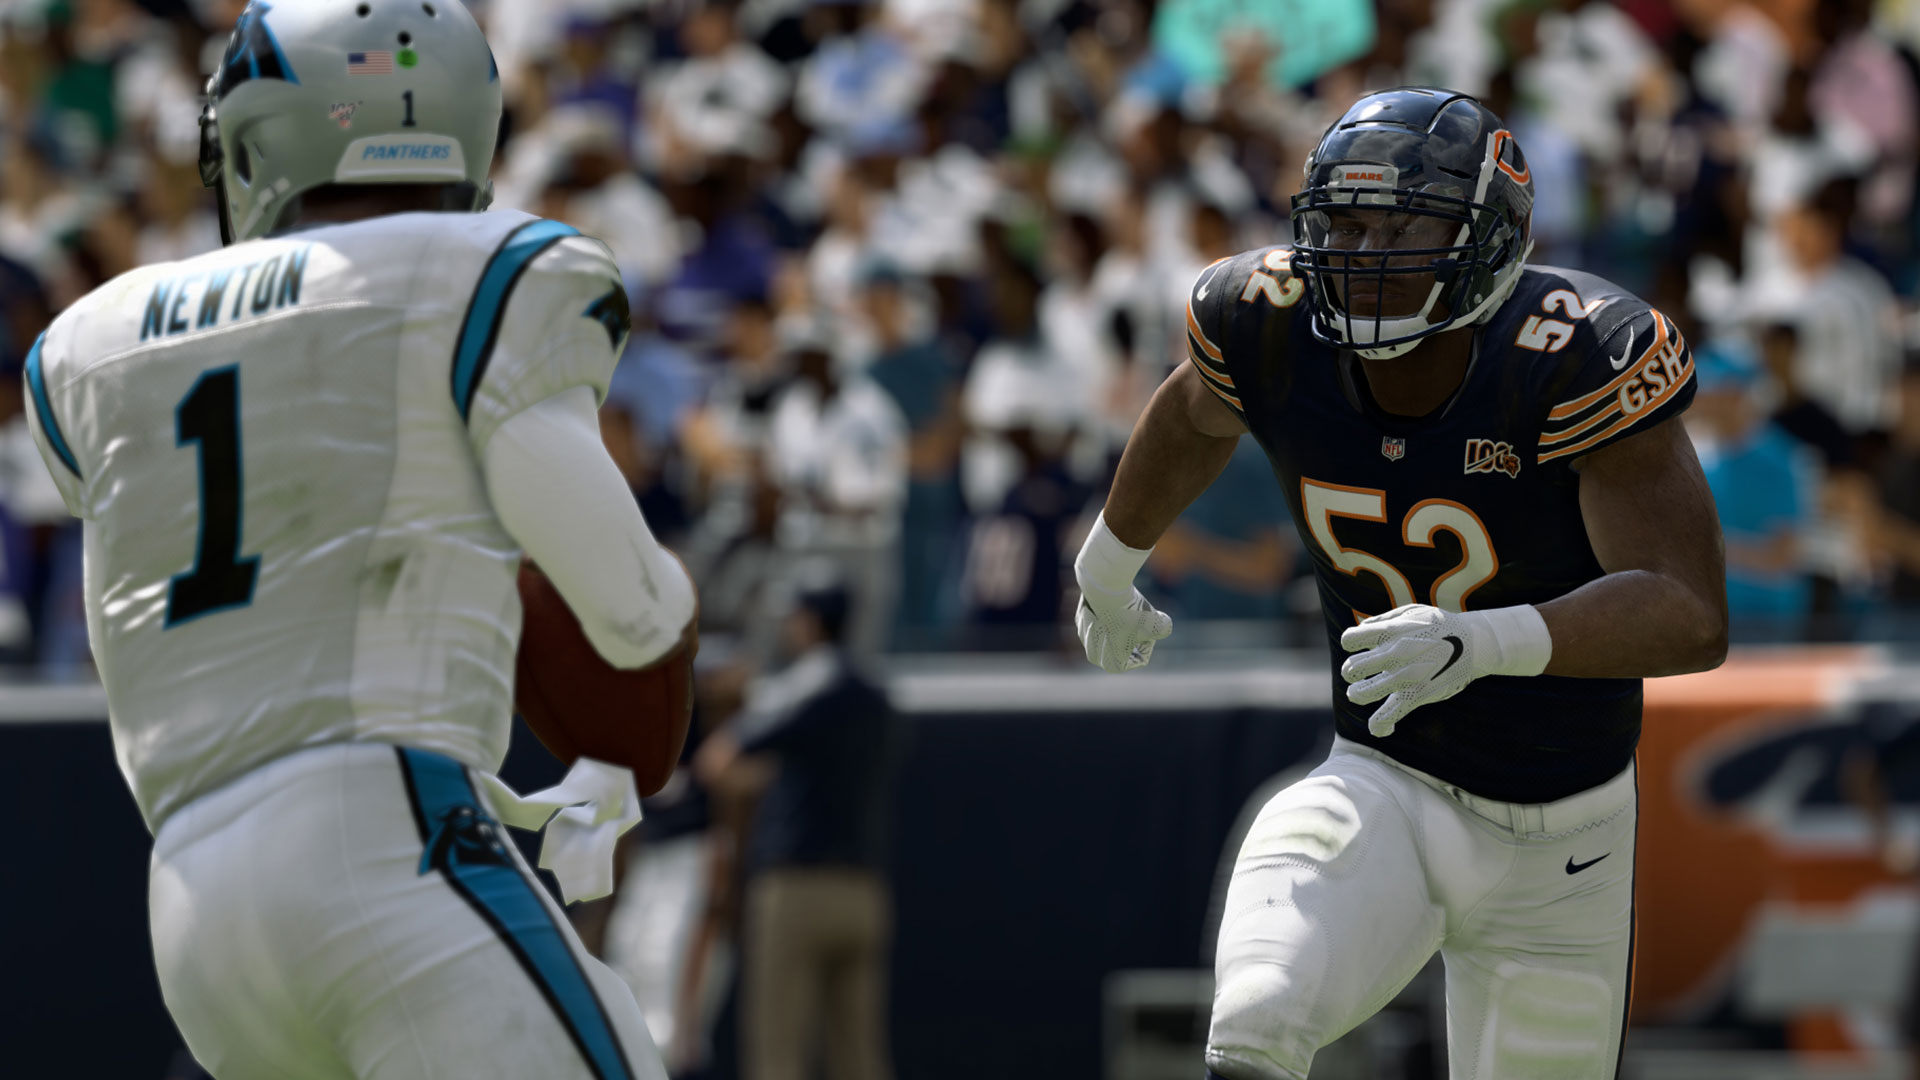 Madden 20 tips: 8 key things to know before you play